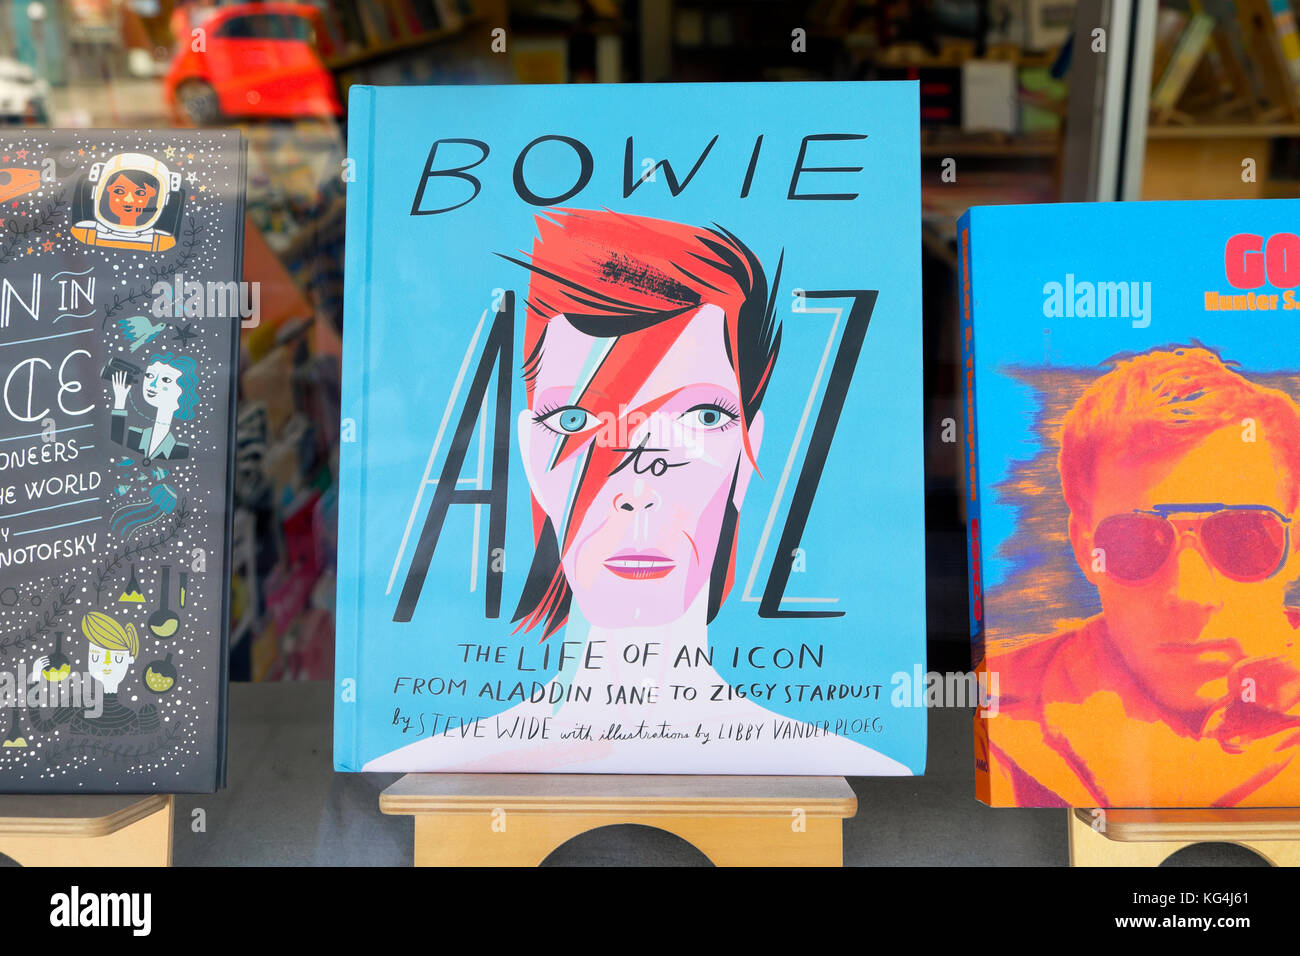 David Bowie  'A Life of An Icon'  A to Z book for sale in a bookstore window in Highland Park, Los Angeles, - Stock Image